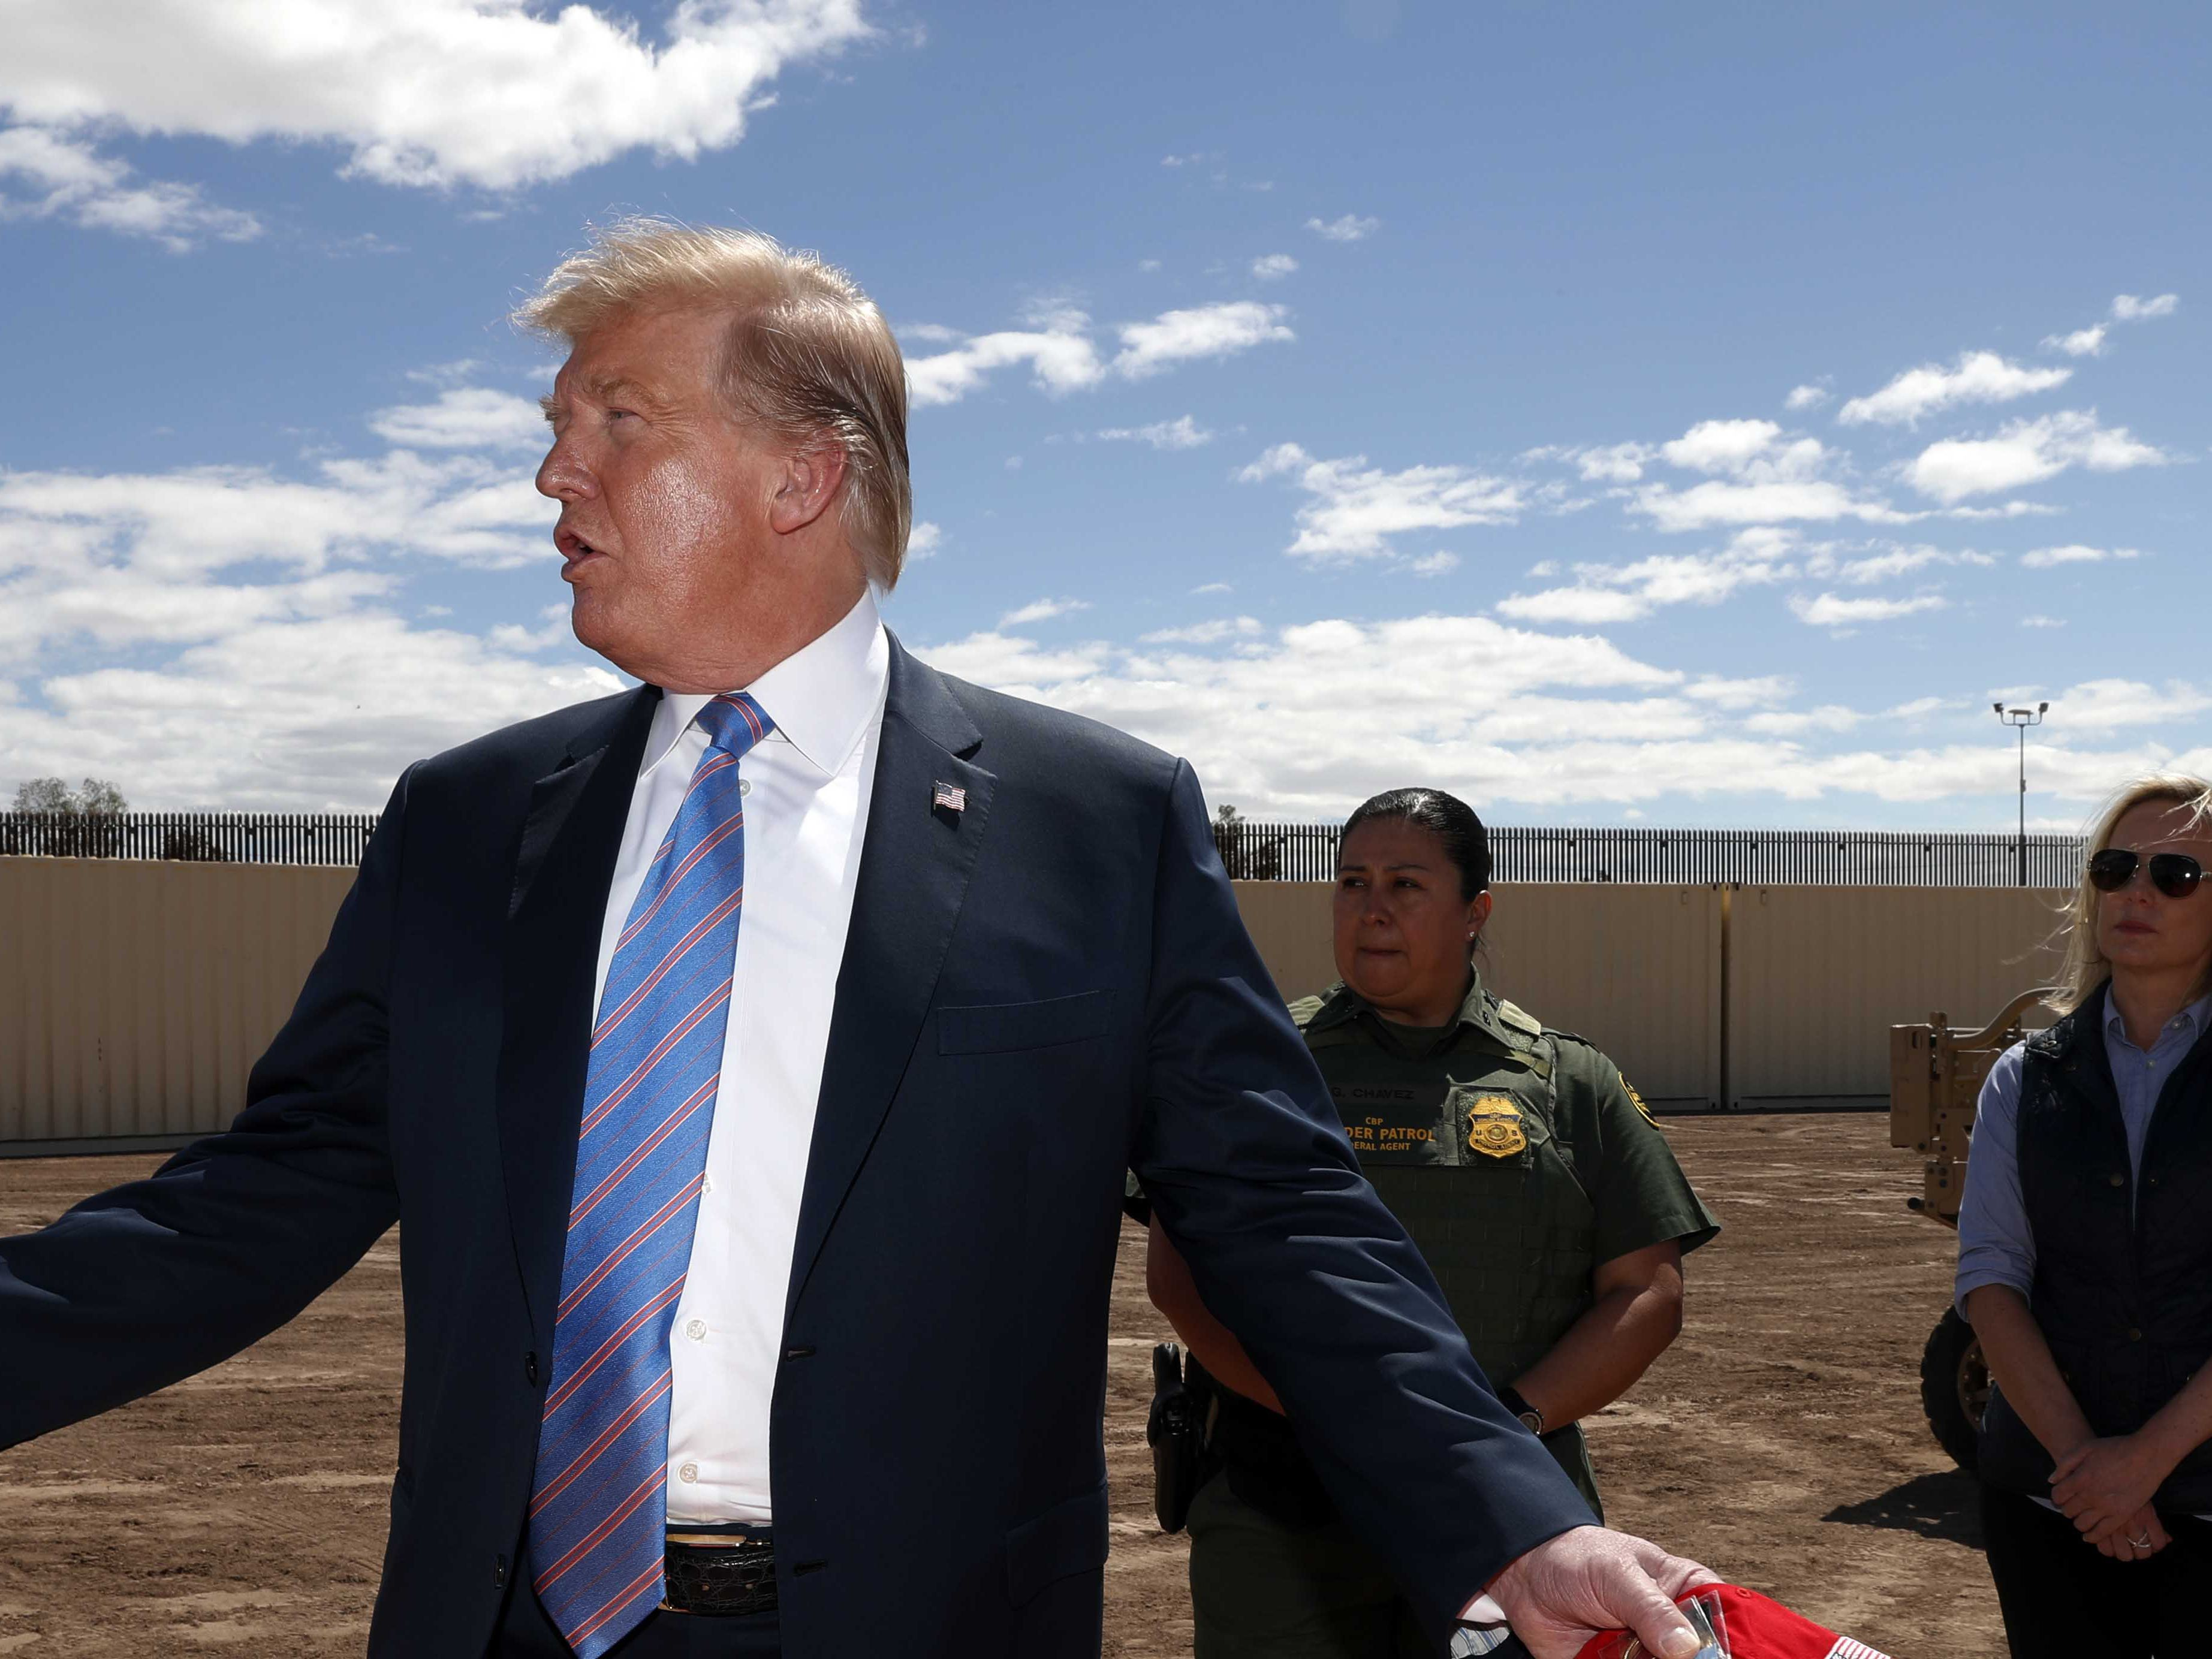 Trump says he's not looking to reinstate family separation policy